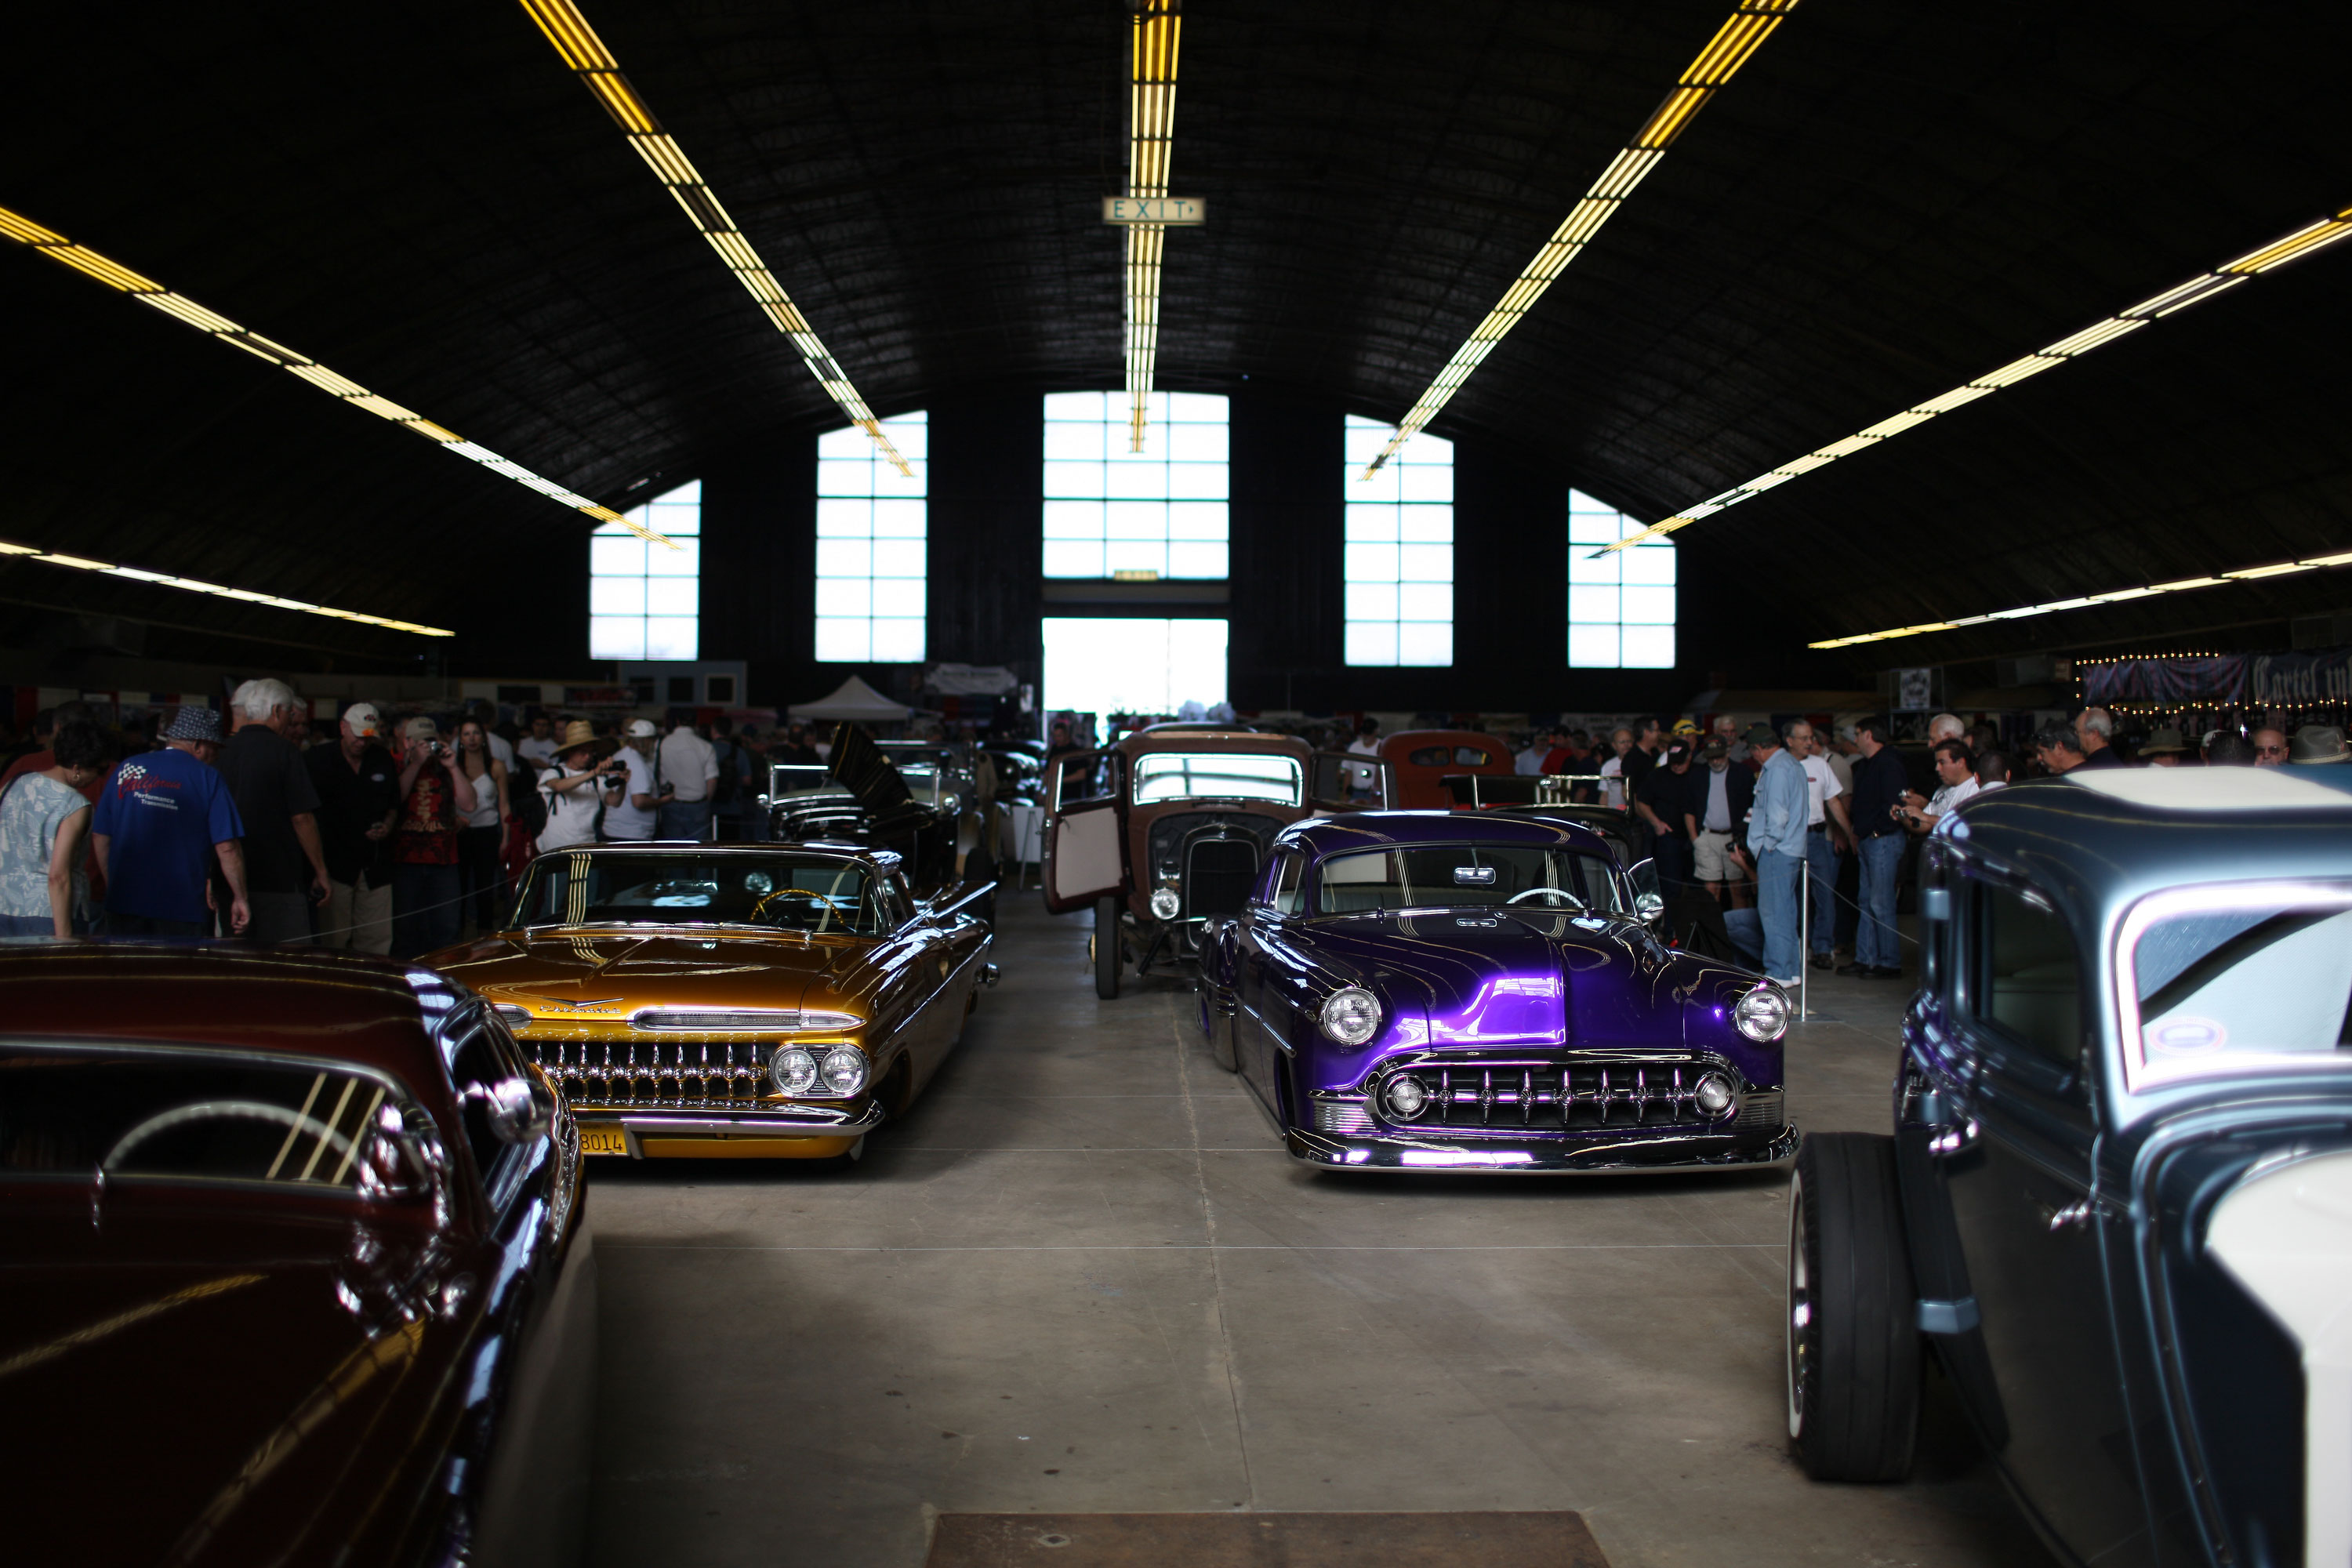 Premium vintage 1967 big amp tall men s big amp tall premium tank - The Grand National Roadster Show Will Bring Together The Finest Rods Customs Lowriders And Motorcycles From All Over The Country To Compete For Over 400